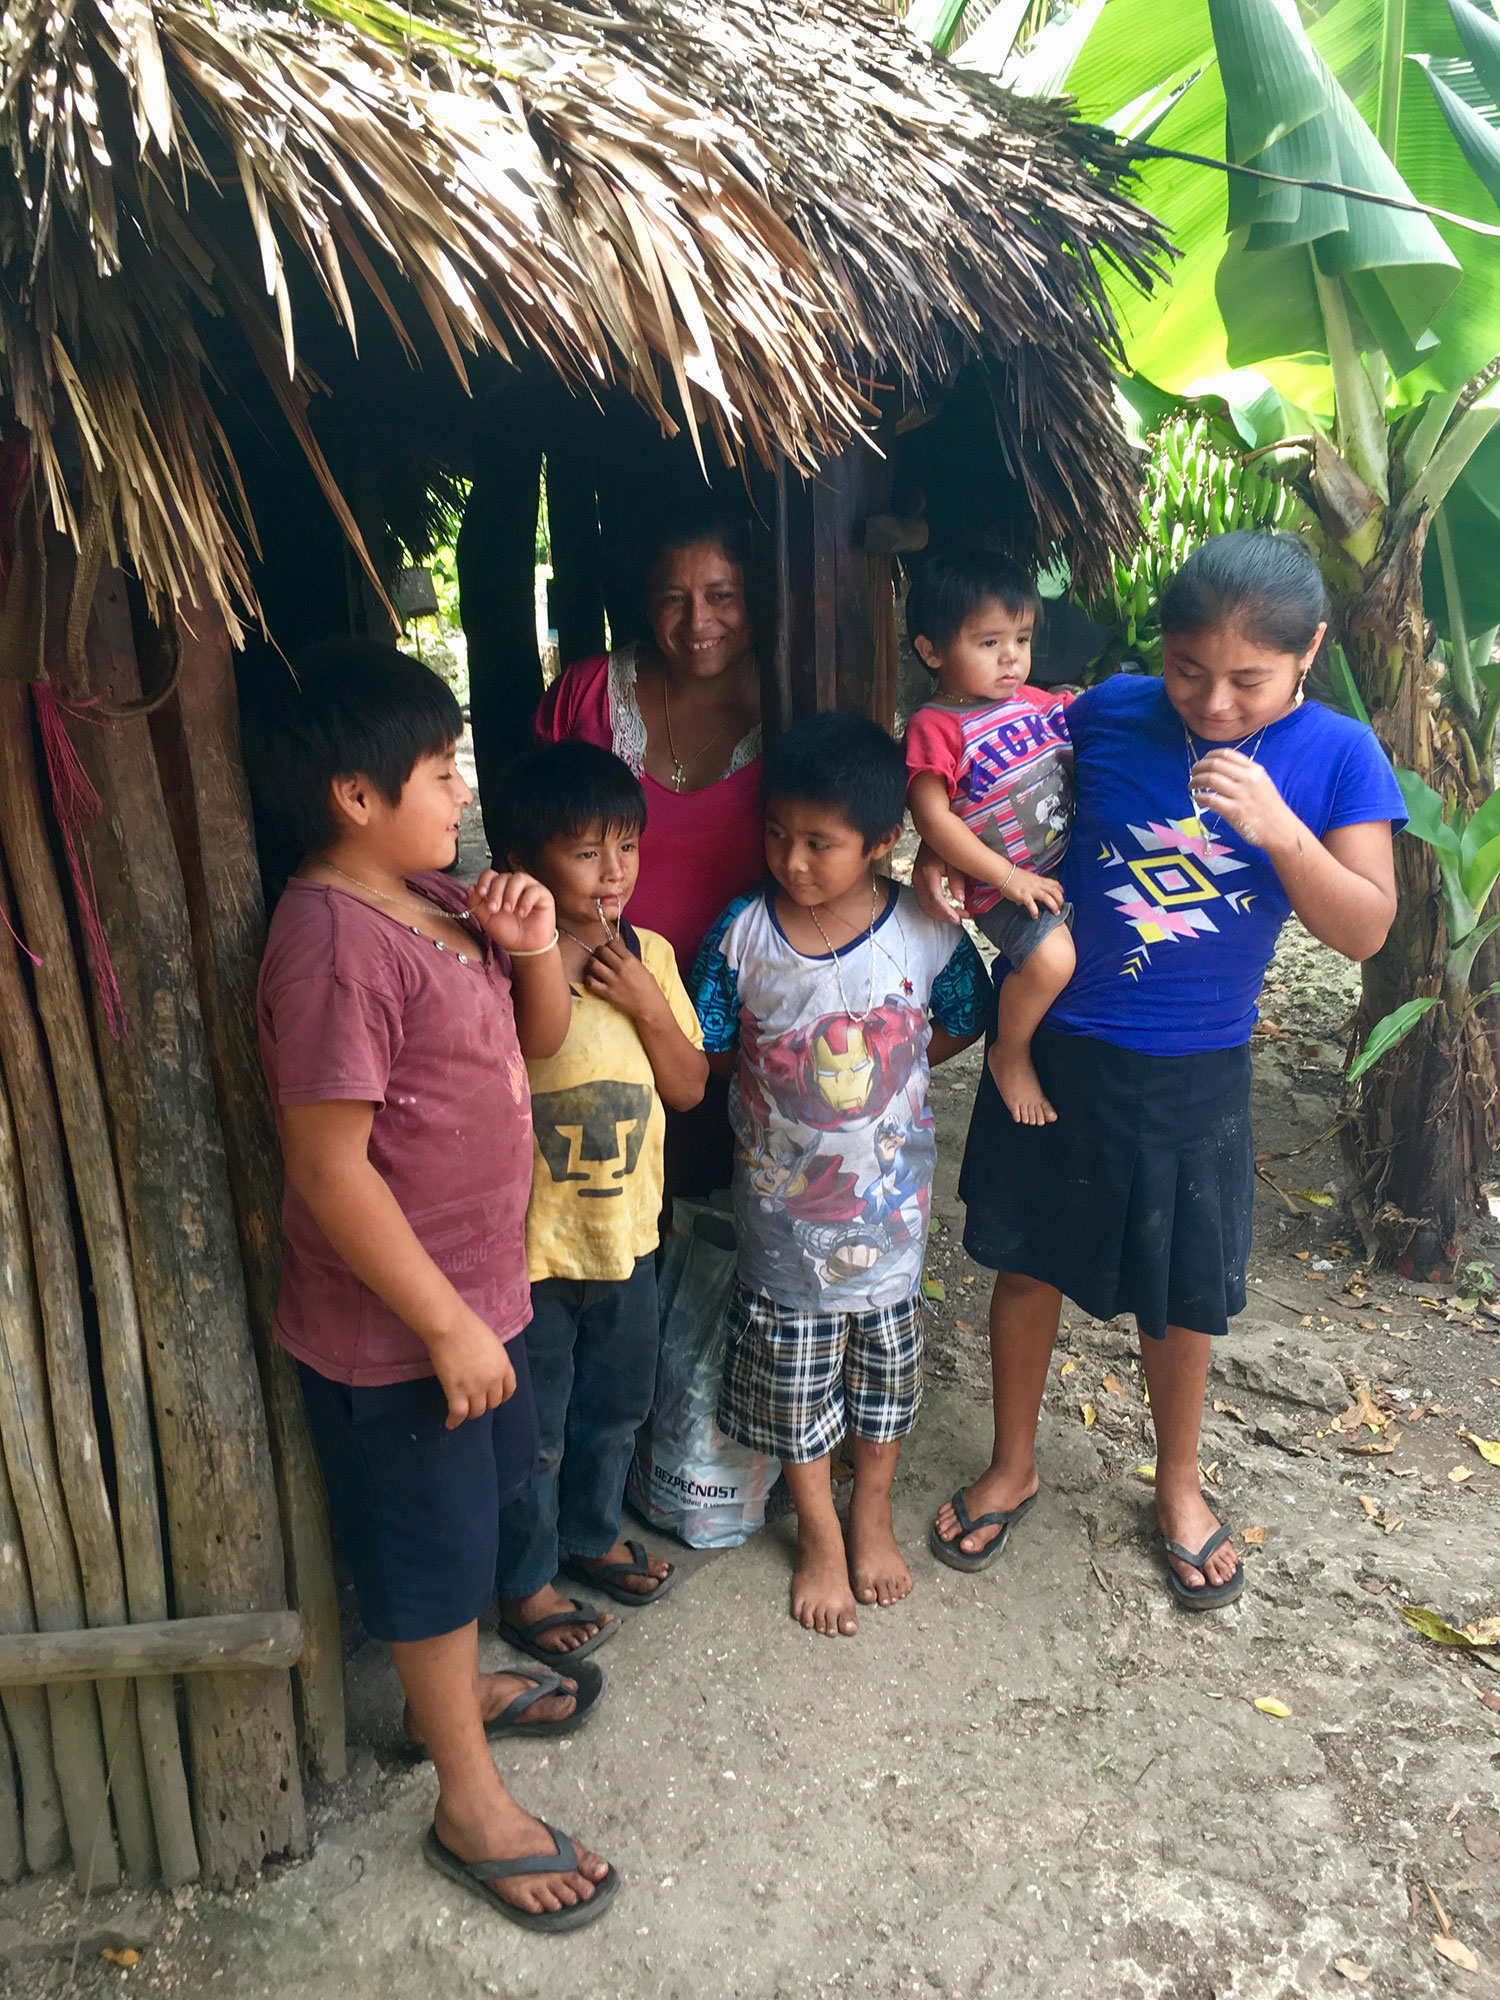 One of the families in Chunyaxché village.